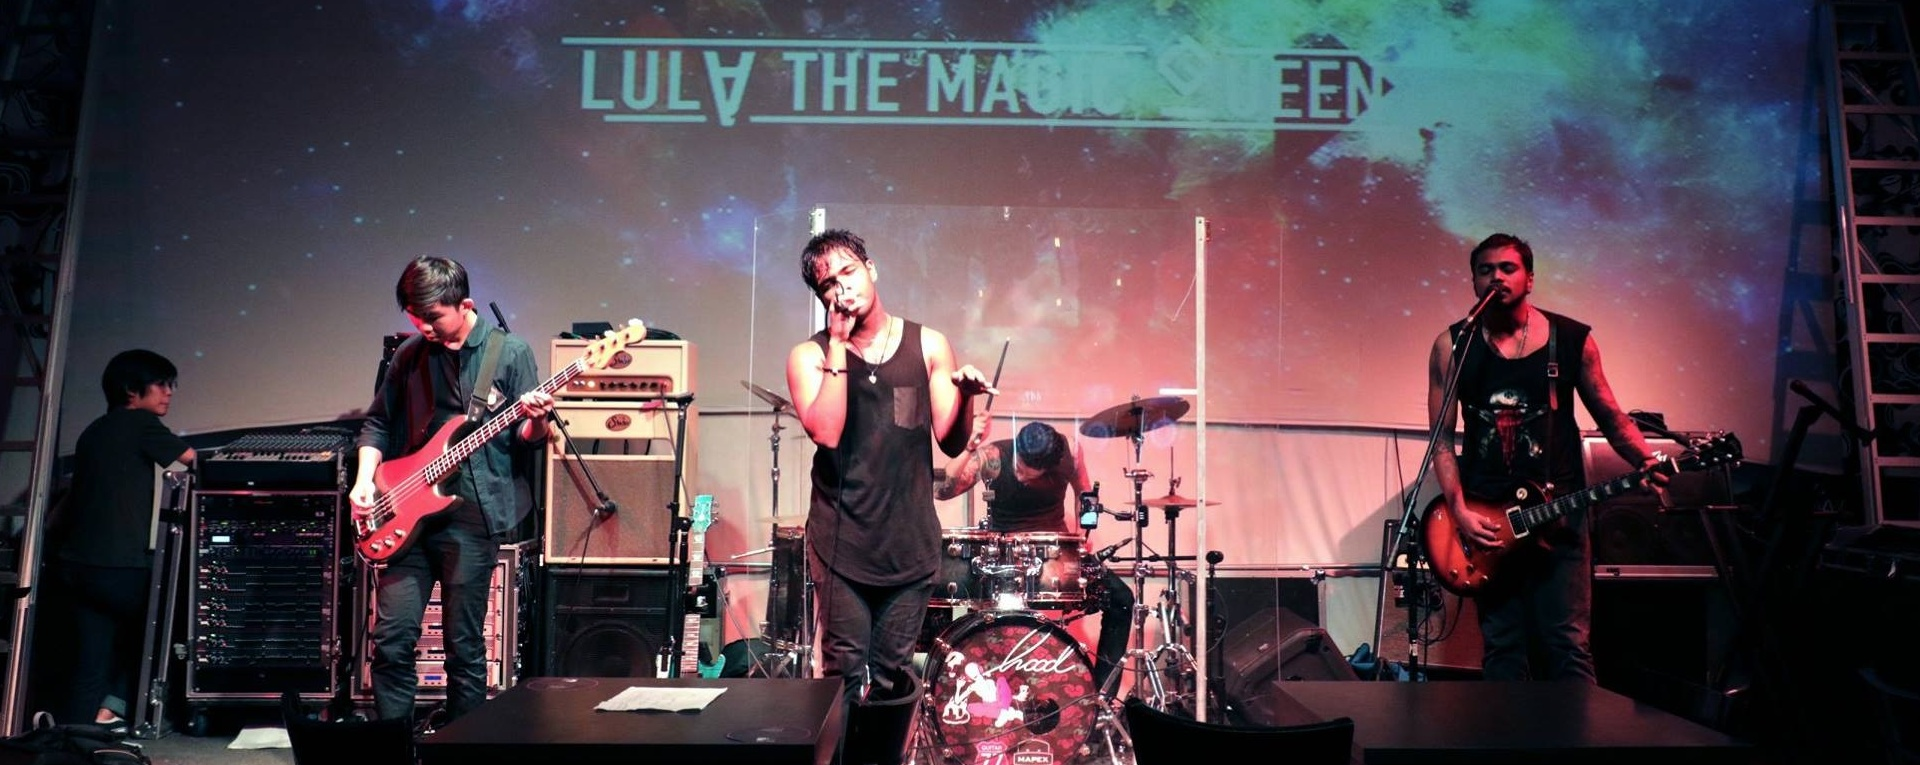 Lula The Magic Queen - Live at Hard Rock Cafe